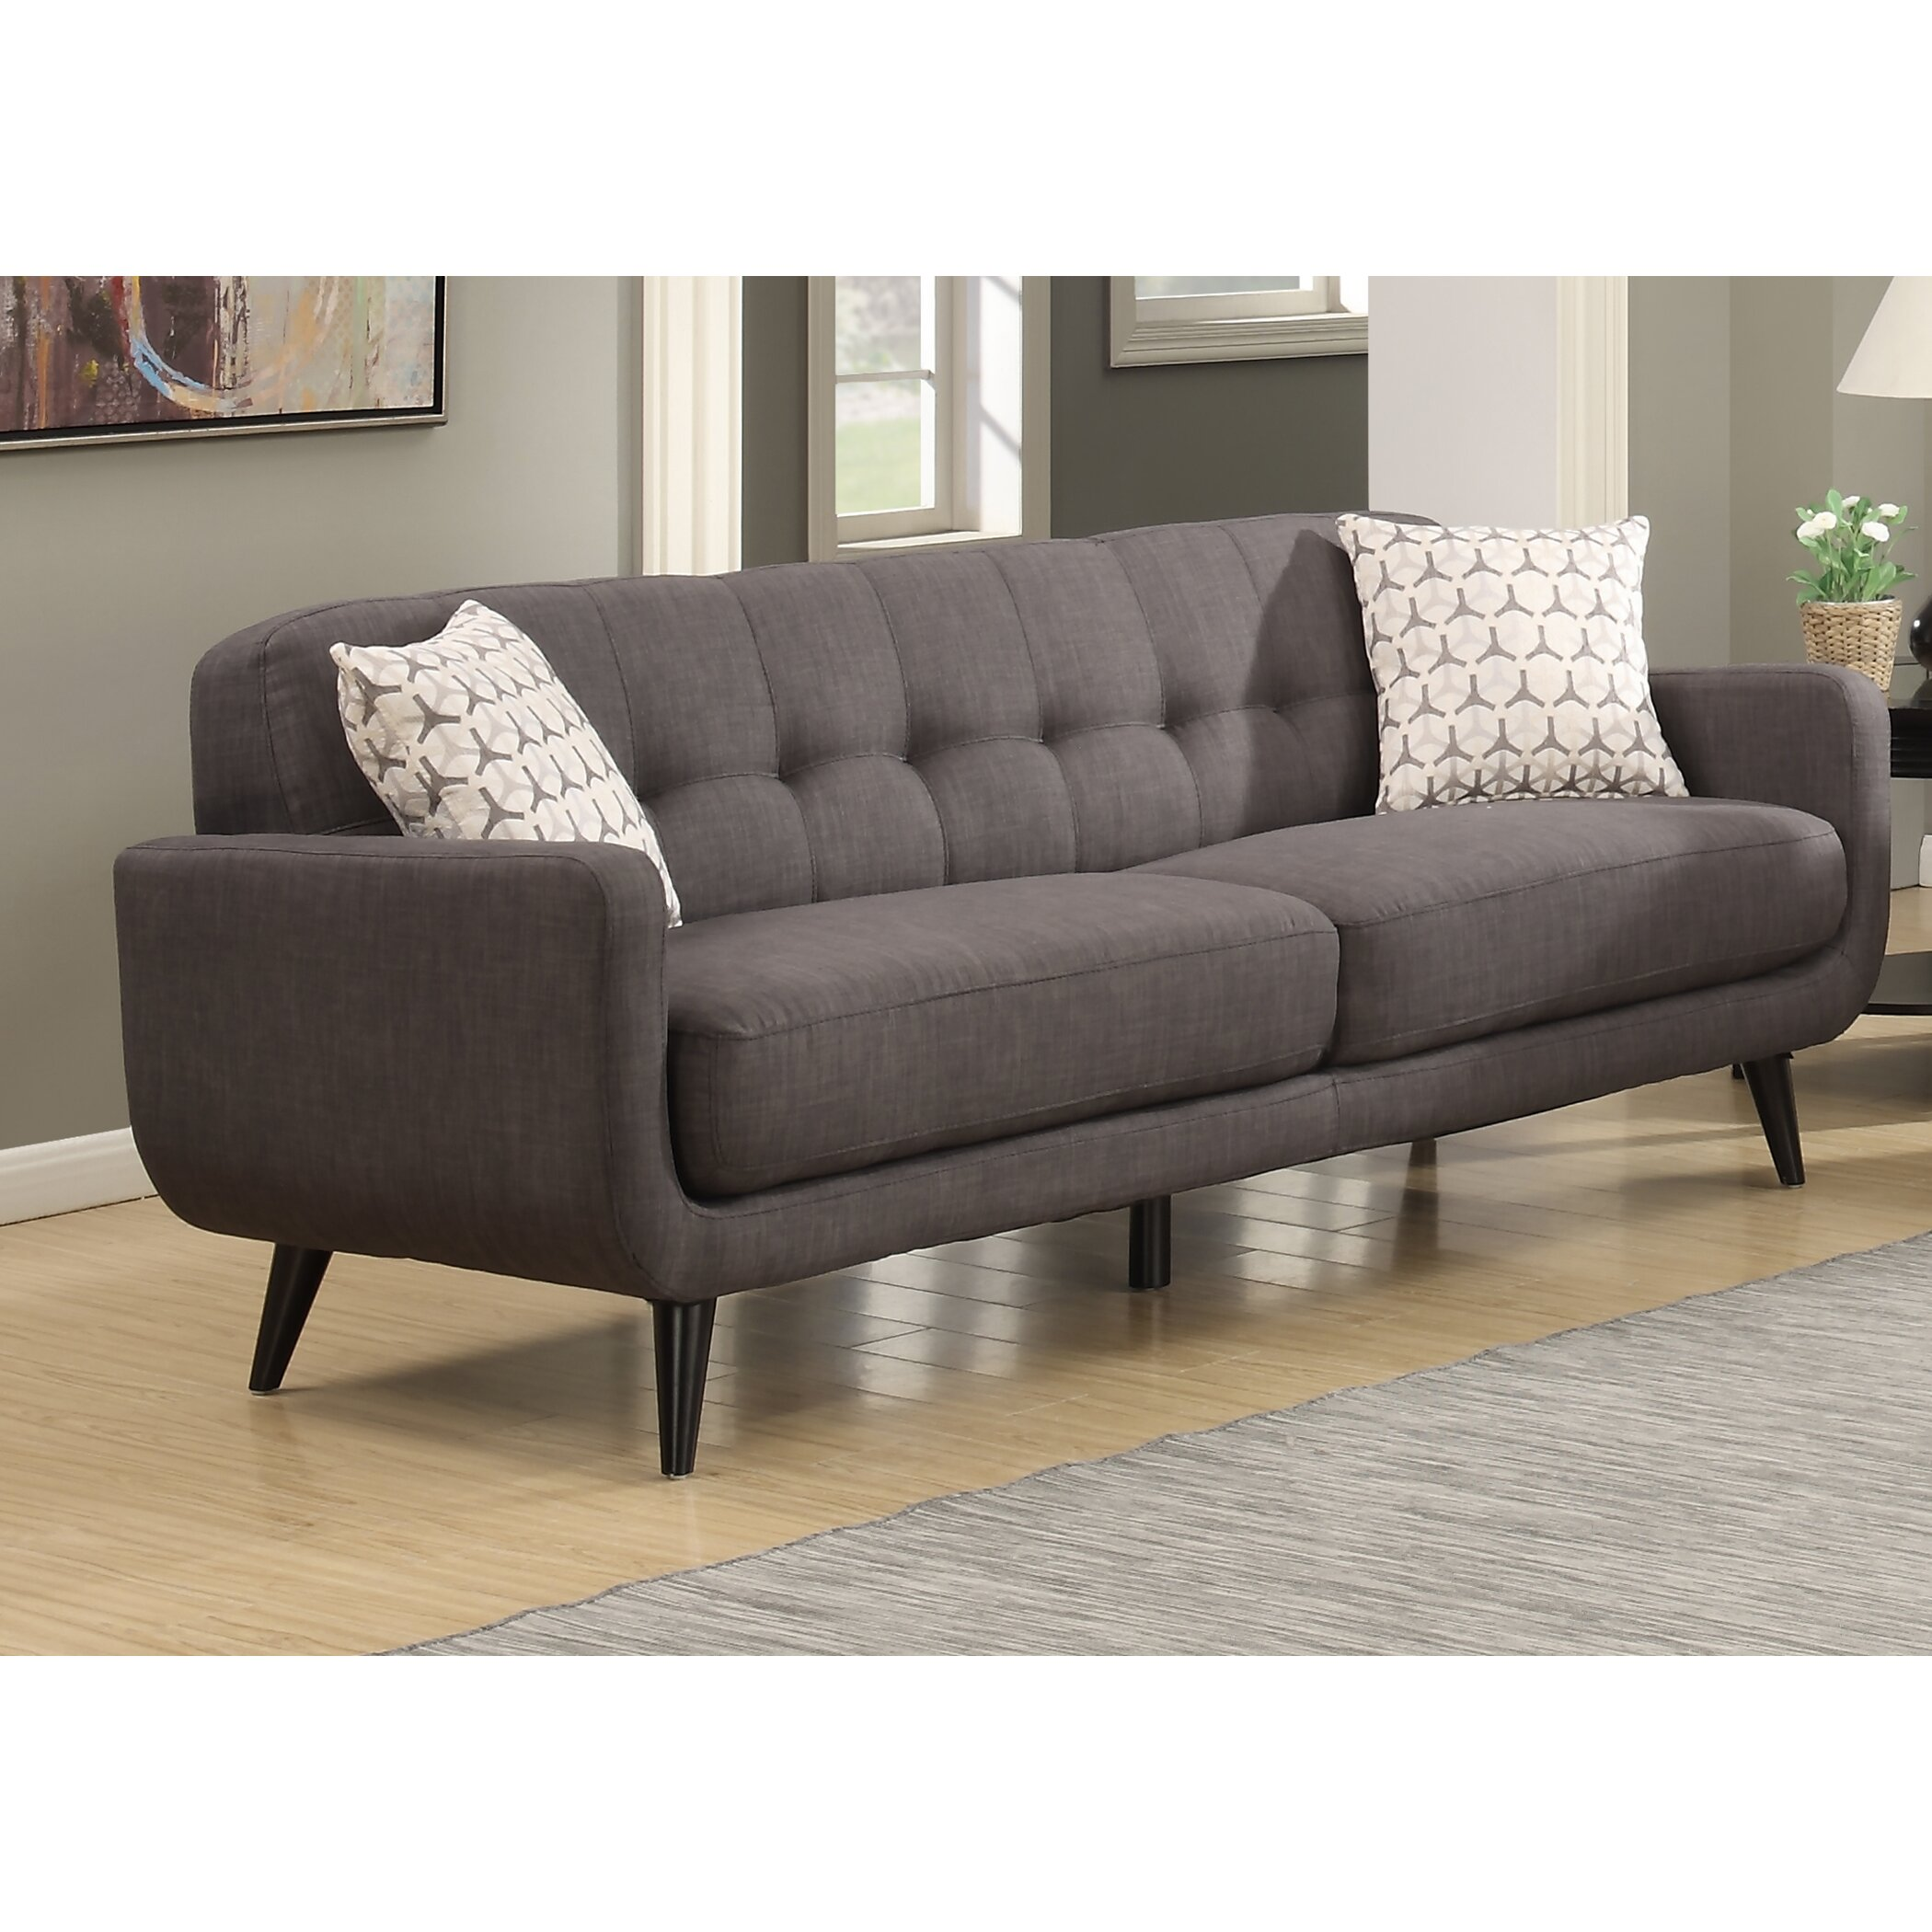 Living Room Ideas 2015 Top 5 Mid Century Modern Sofa: AC Pacific Crystal Mid-Century Sofa